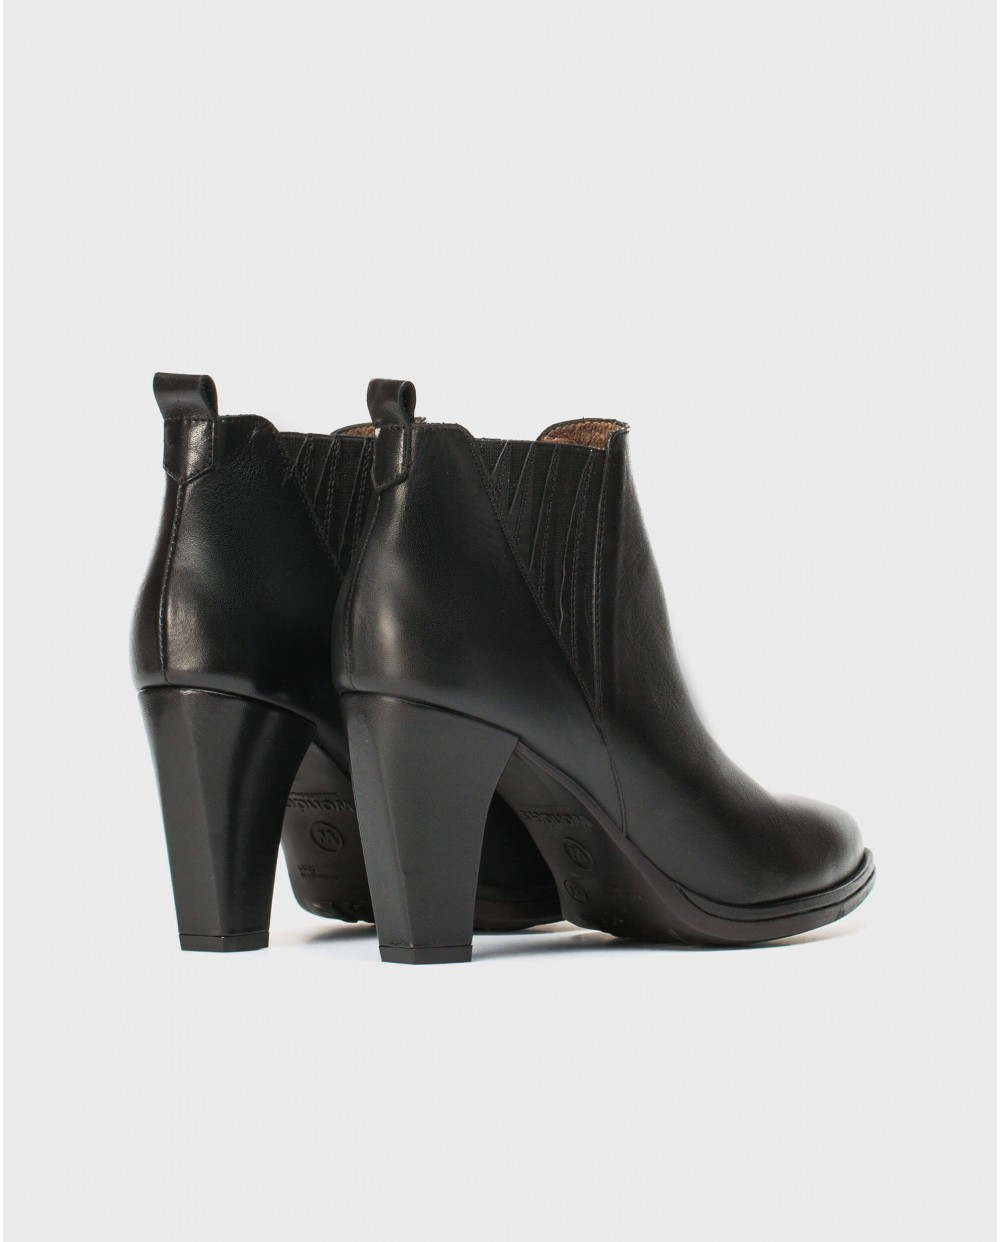 Wonders-Ankle Boots-High heeled ankle boot with V elastic